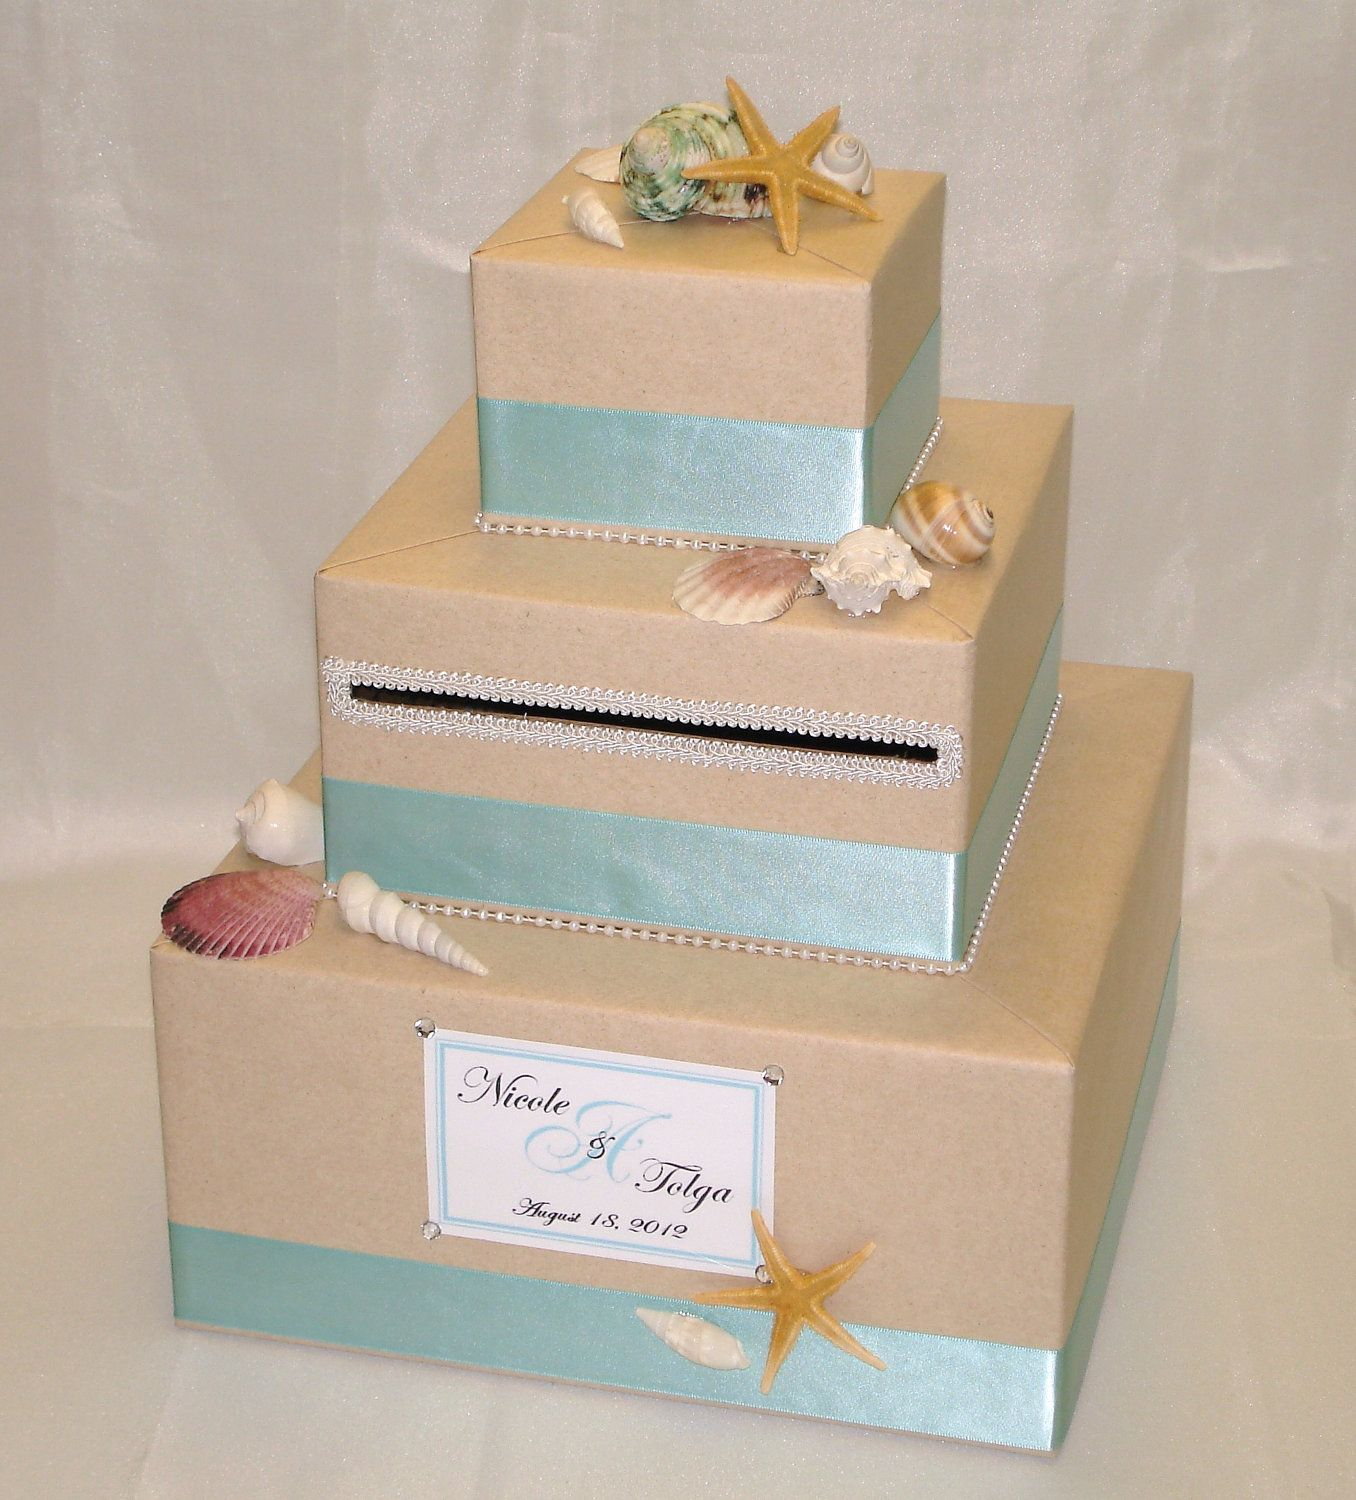 Elegant Custom Made Wedding Card Box Beach Theme 7500 Via Etsy